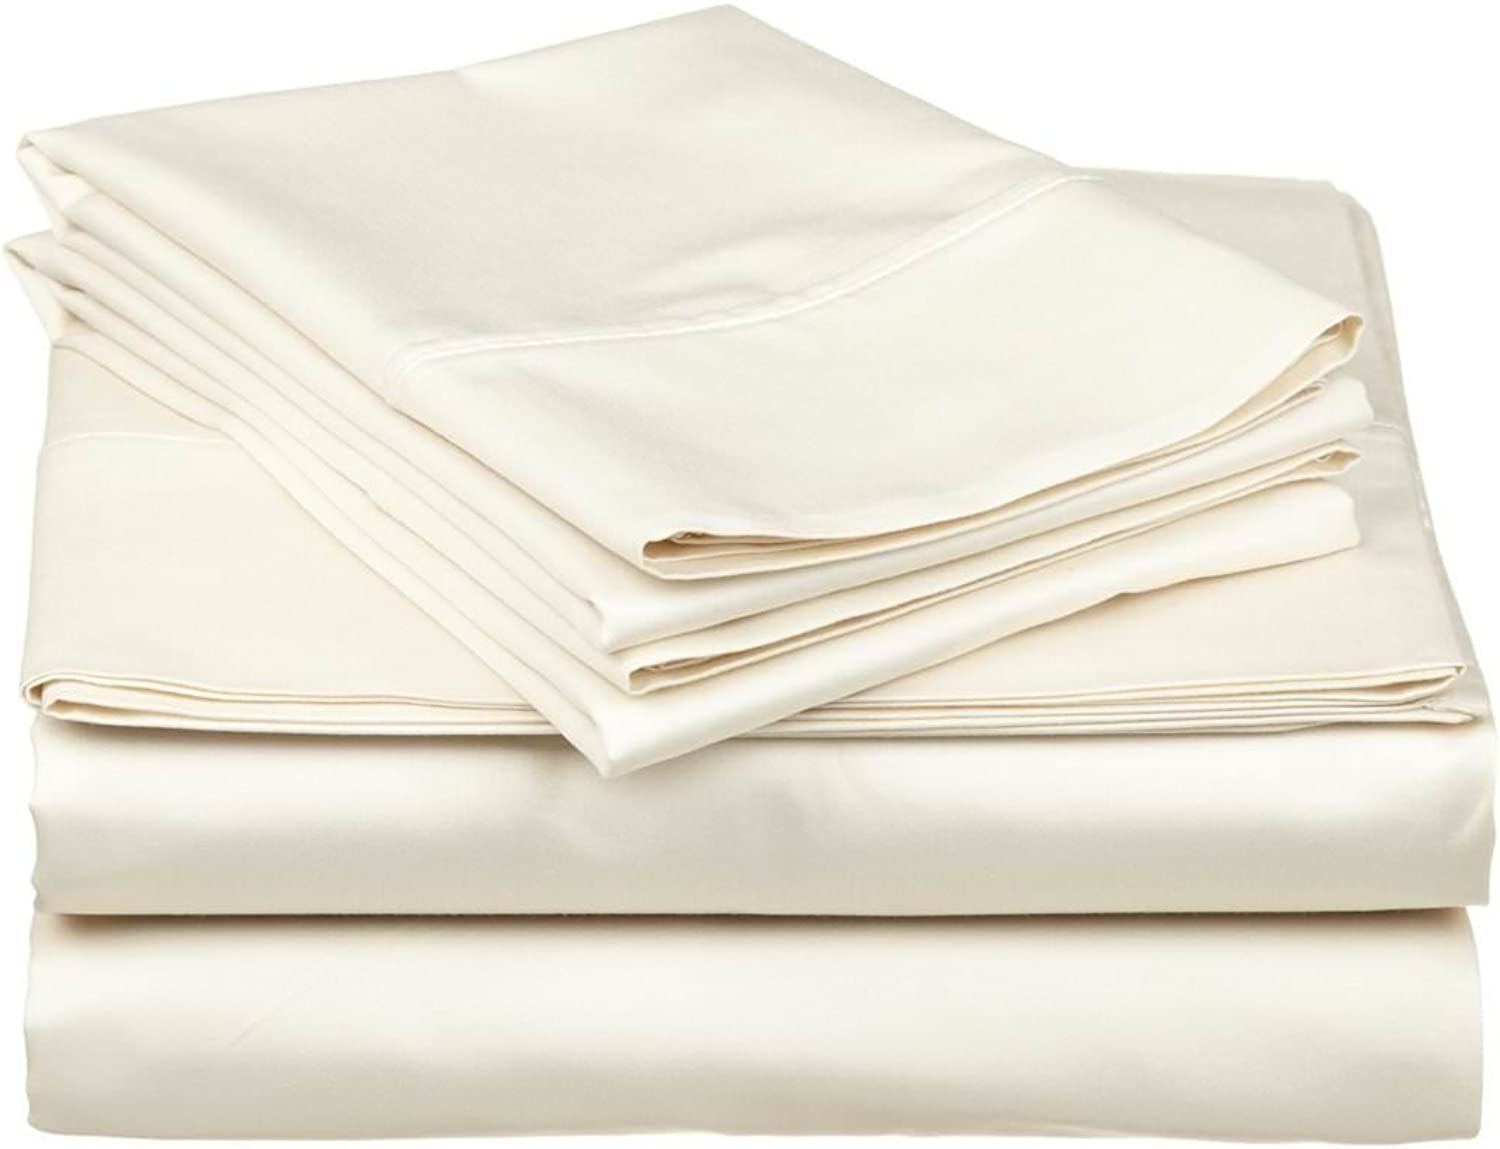 Split Queen Size Bed Sheets Set Ivory, Bedding Sheets Set,5-Piece Bedding Sheet Set 15  Deep Pocket 400 TC 100% Cotton, Solid